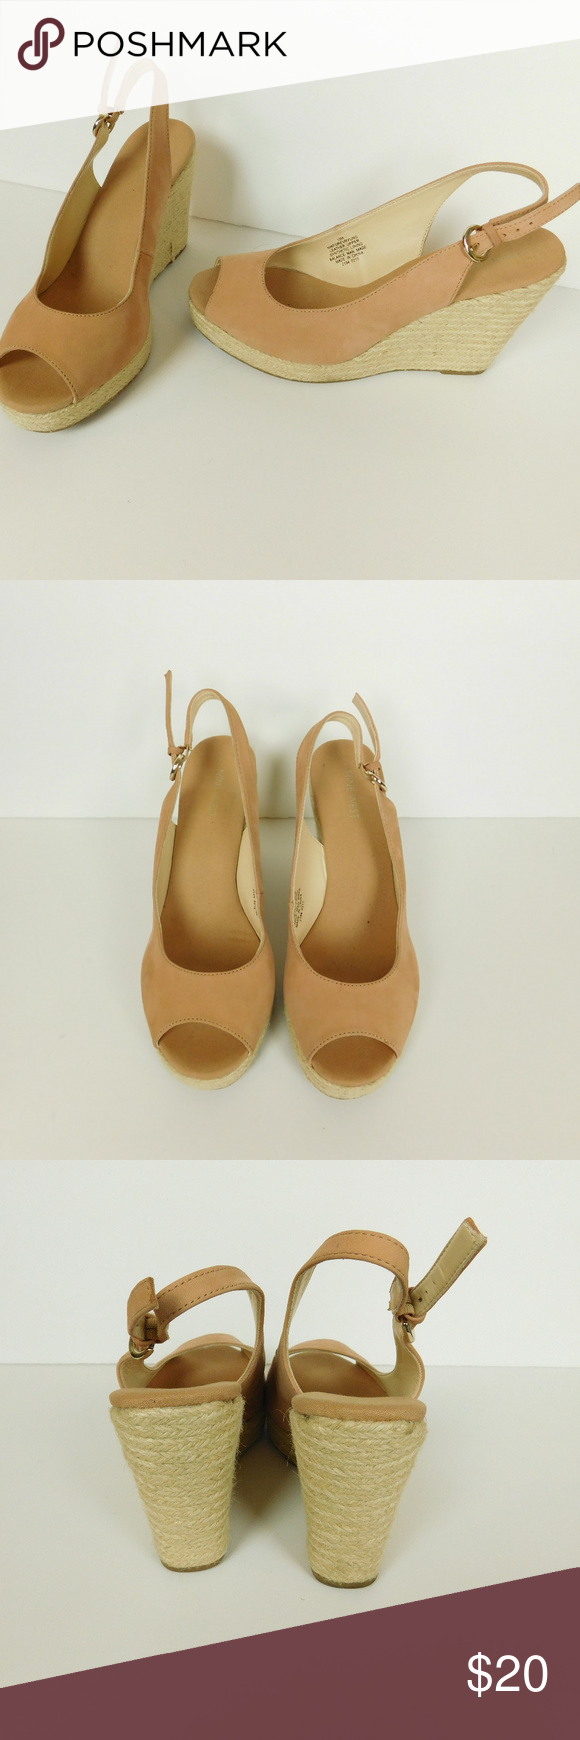 63d2ab6ba66 Nine West Wedges 10 High Heel Forever Young Pre-Owned Woman Wedge High Heel  Shoes